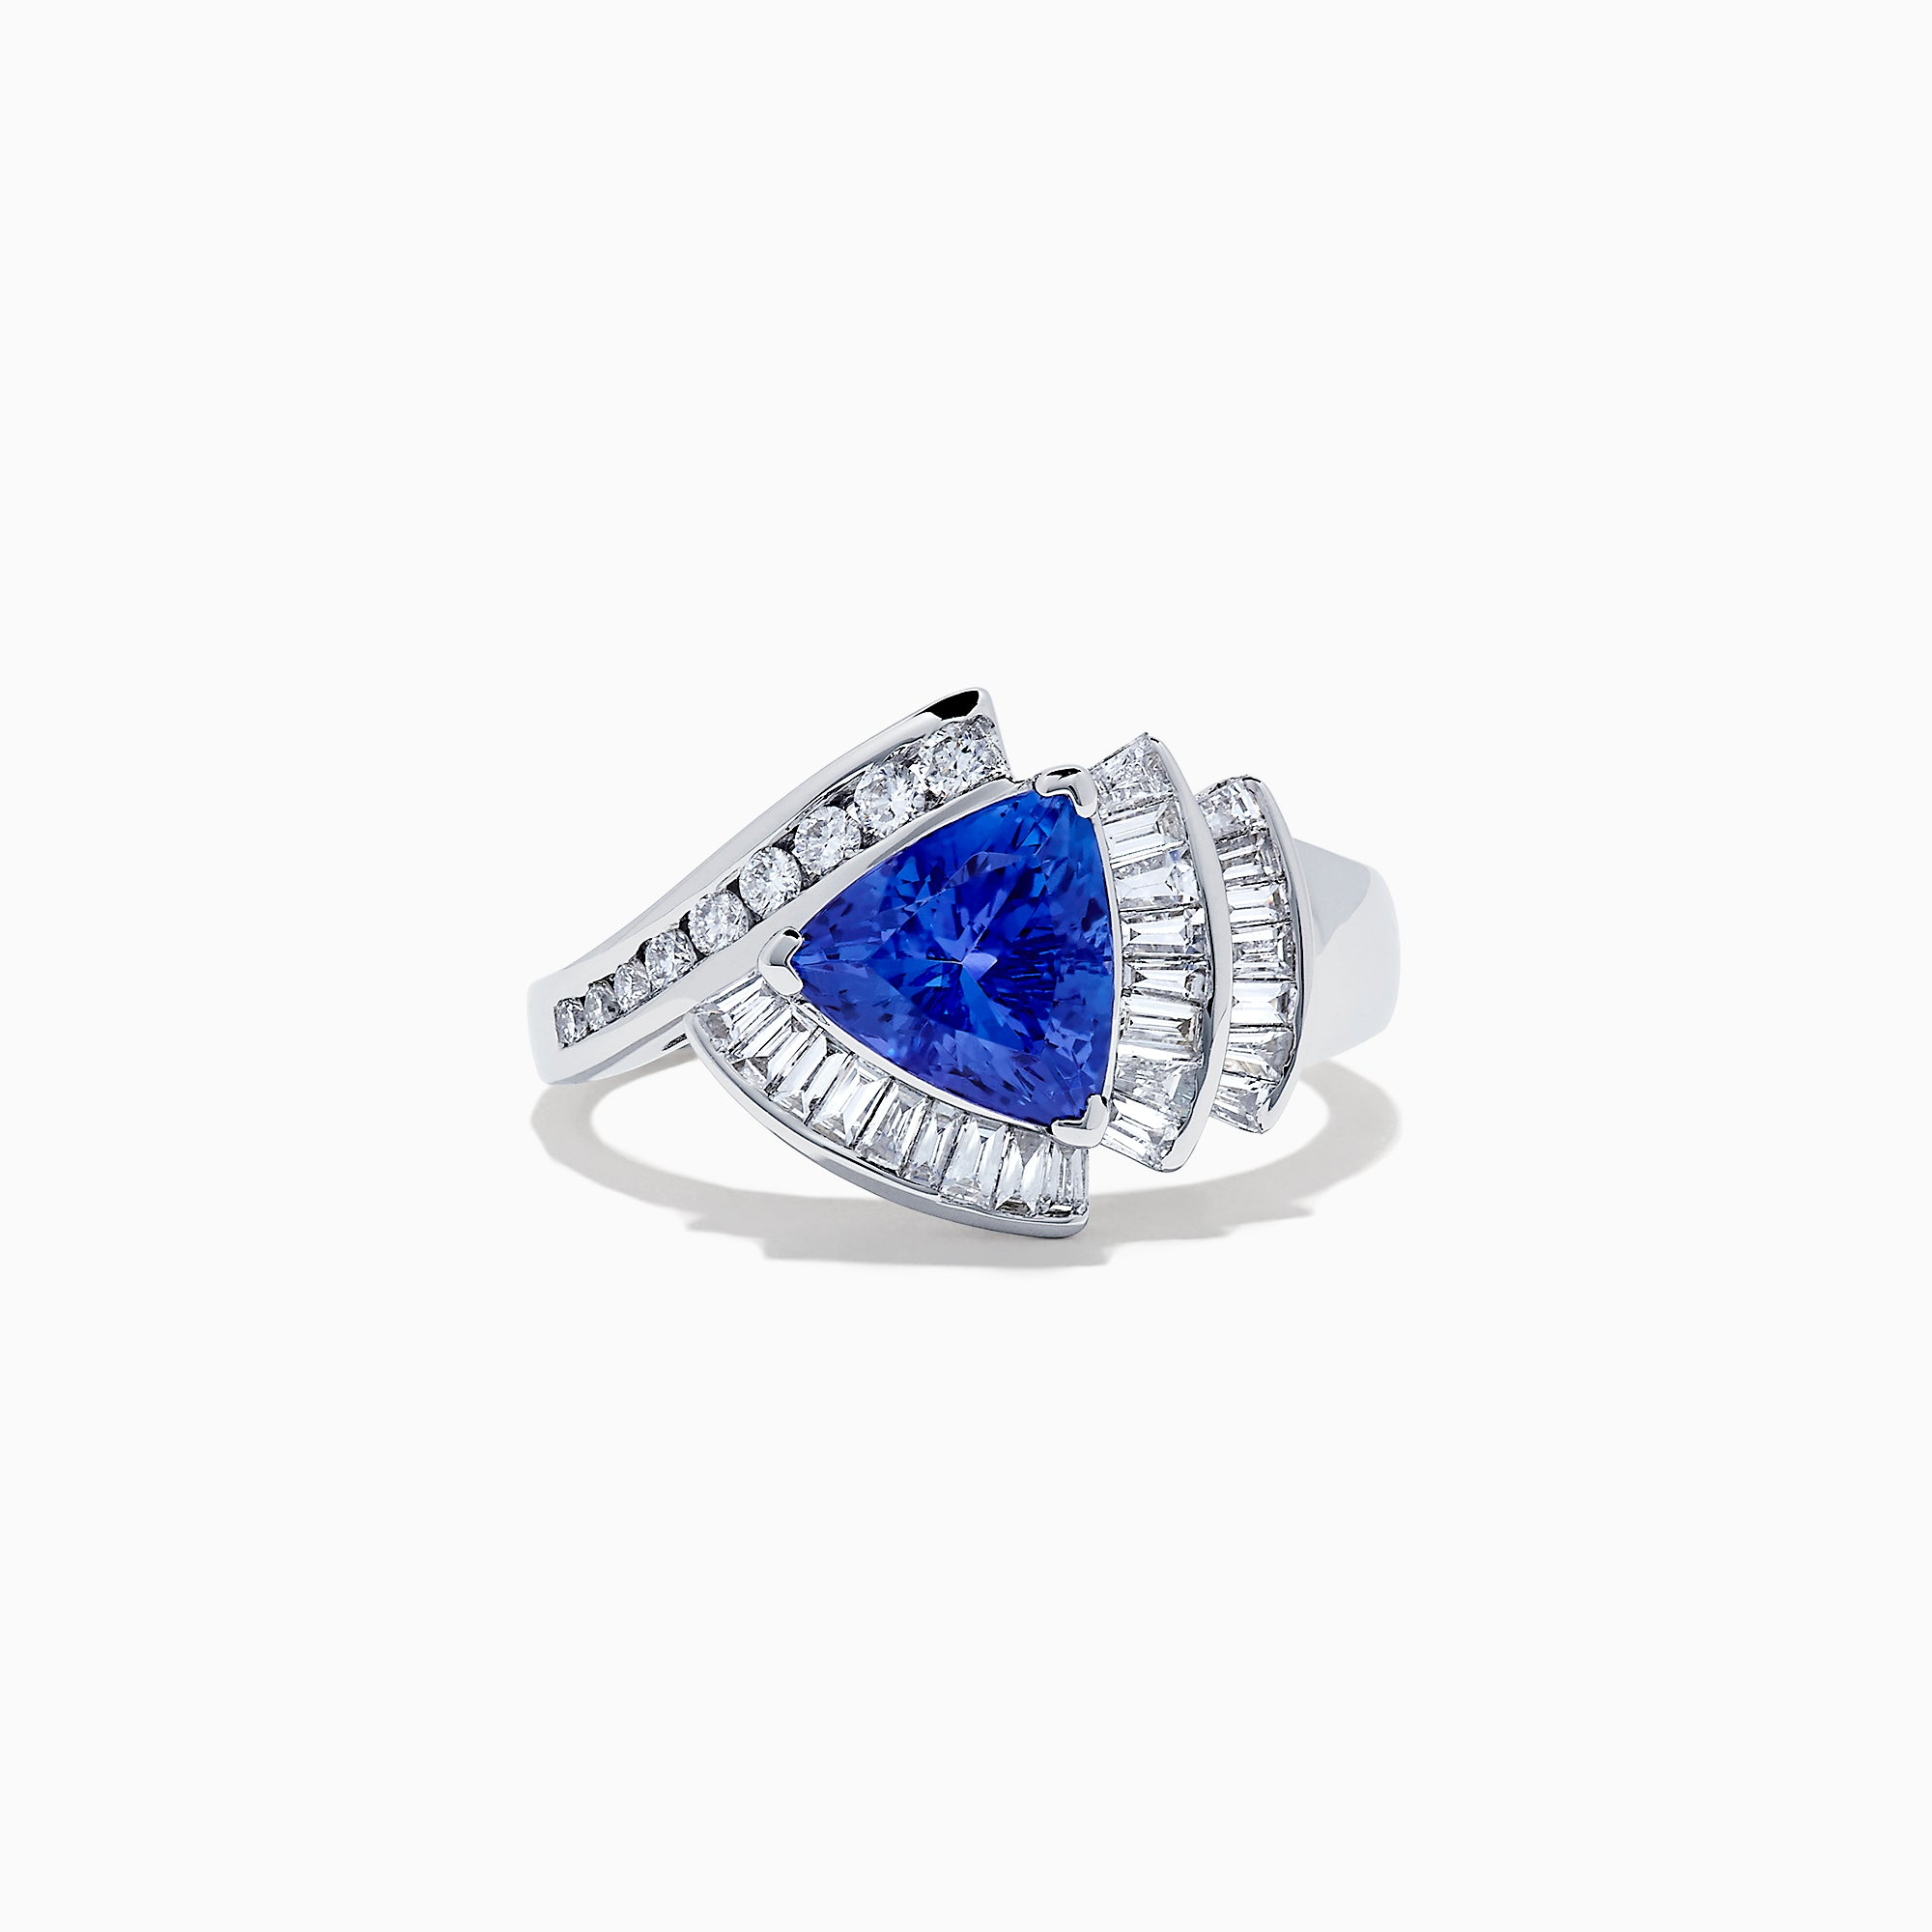 Effy Tanzanite Royale 14K White Gold Tanzanite and Diamond Ring, 2.10 TCW